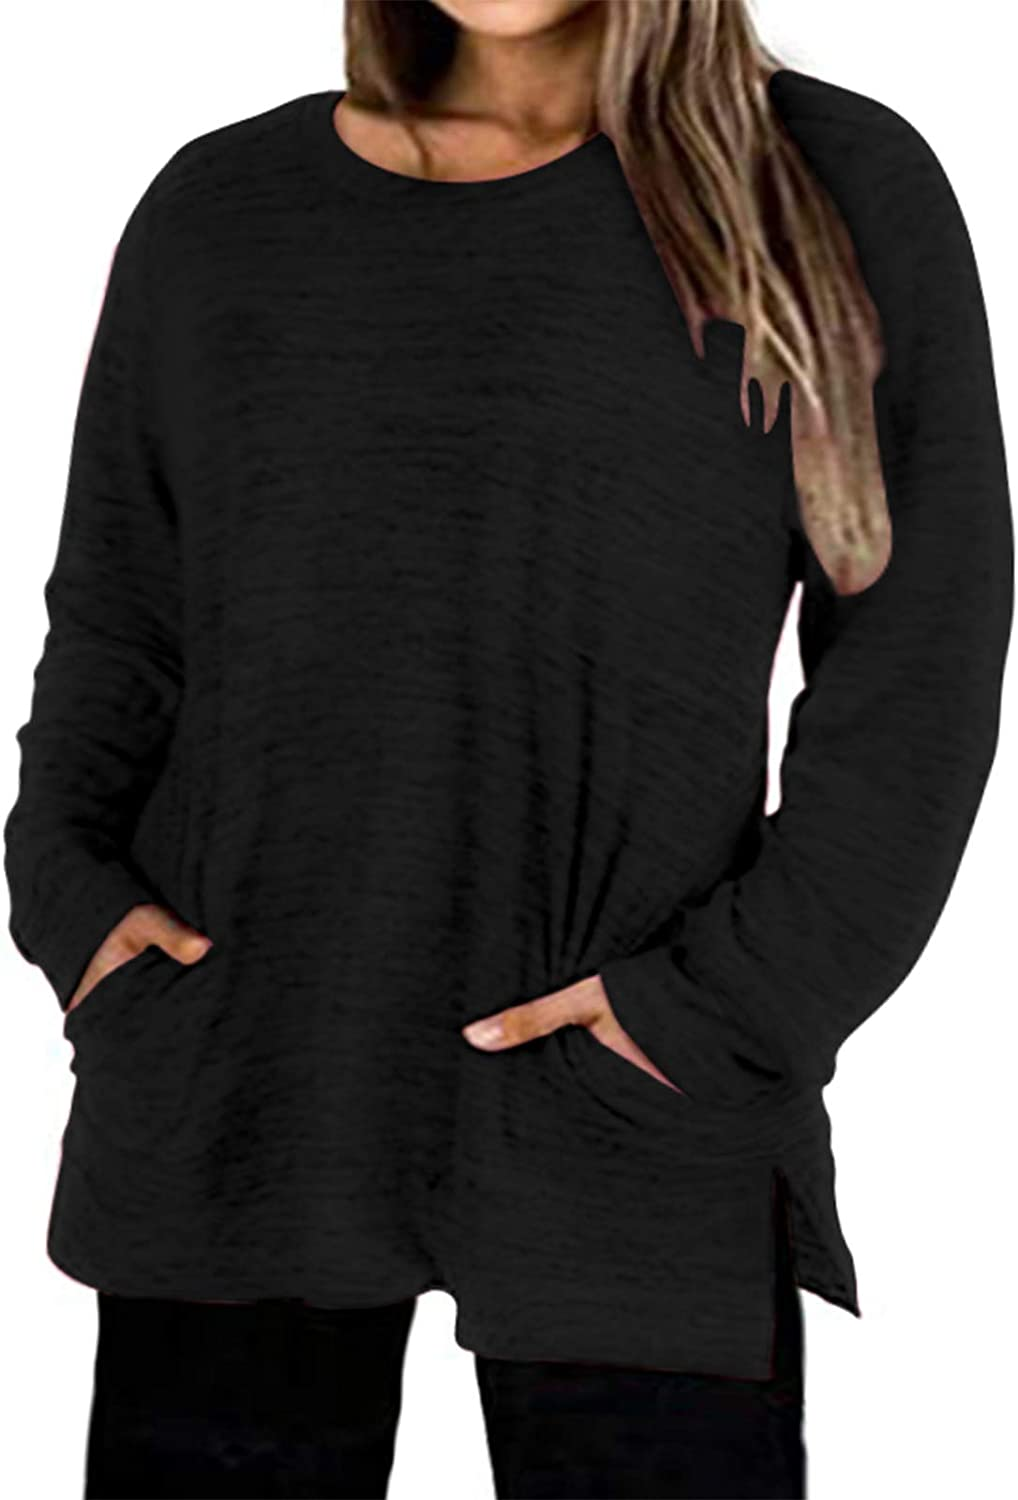 Plus-Size Tops for Women Long Sleeve T shirt Crew Neck Sweatshirt Tunic Blouse with Pockets